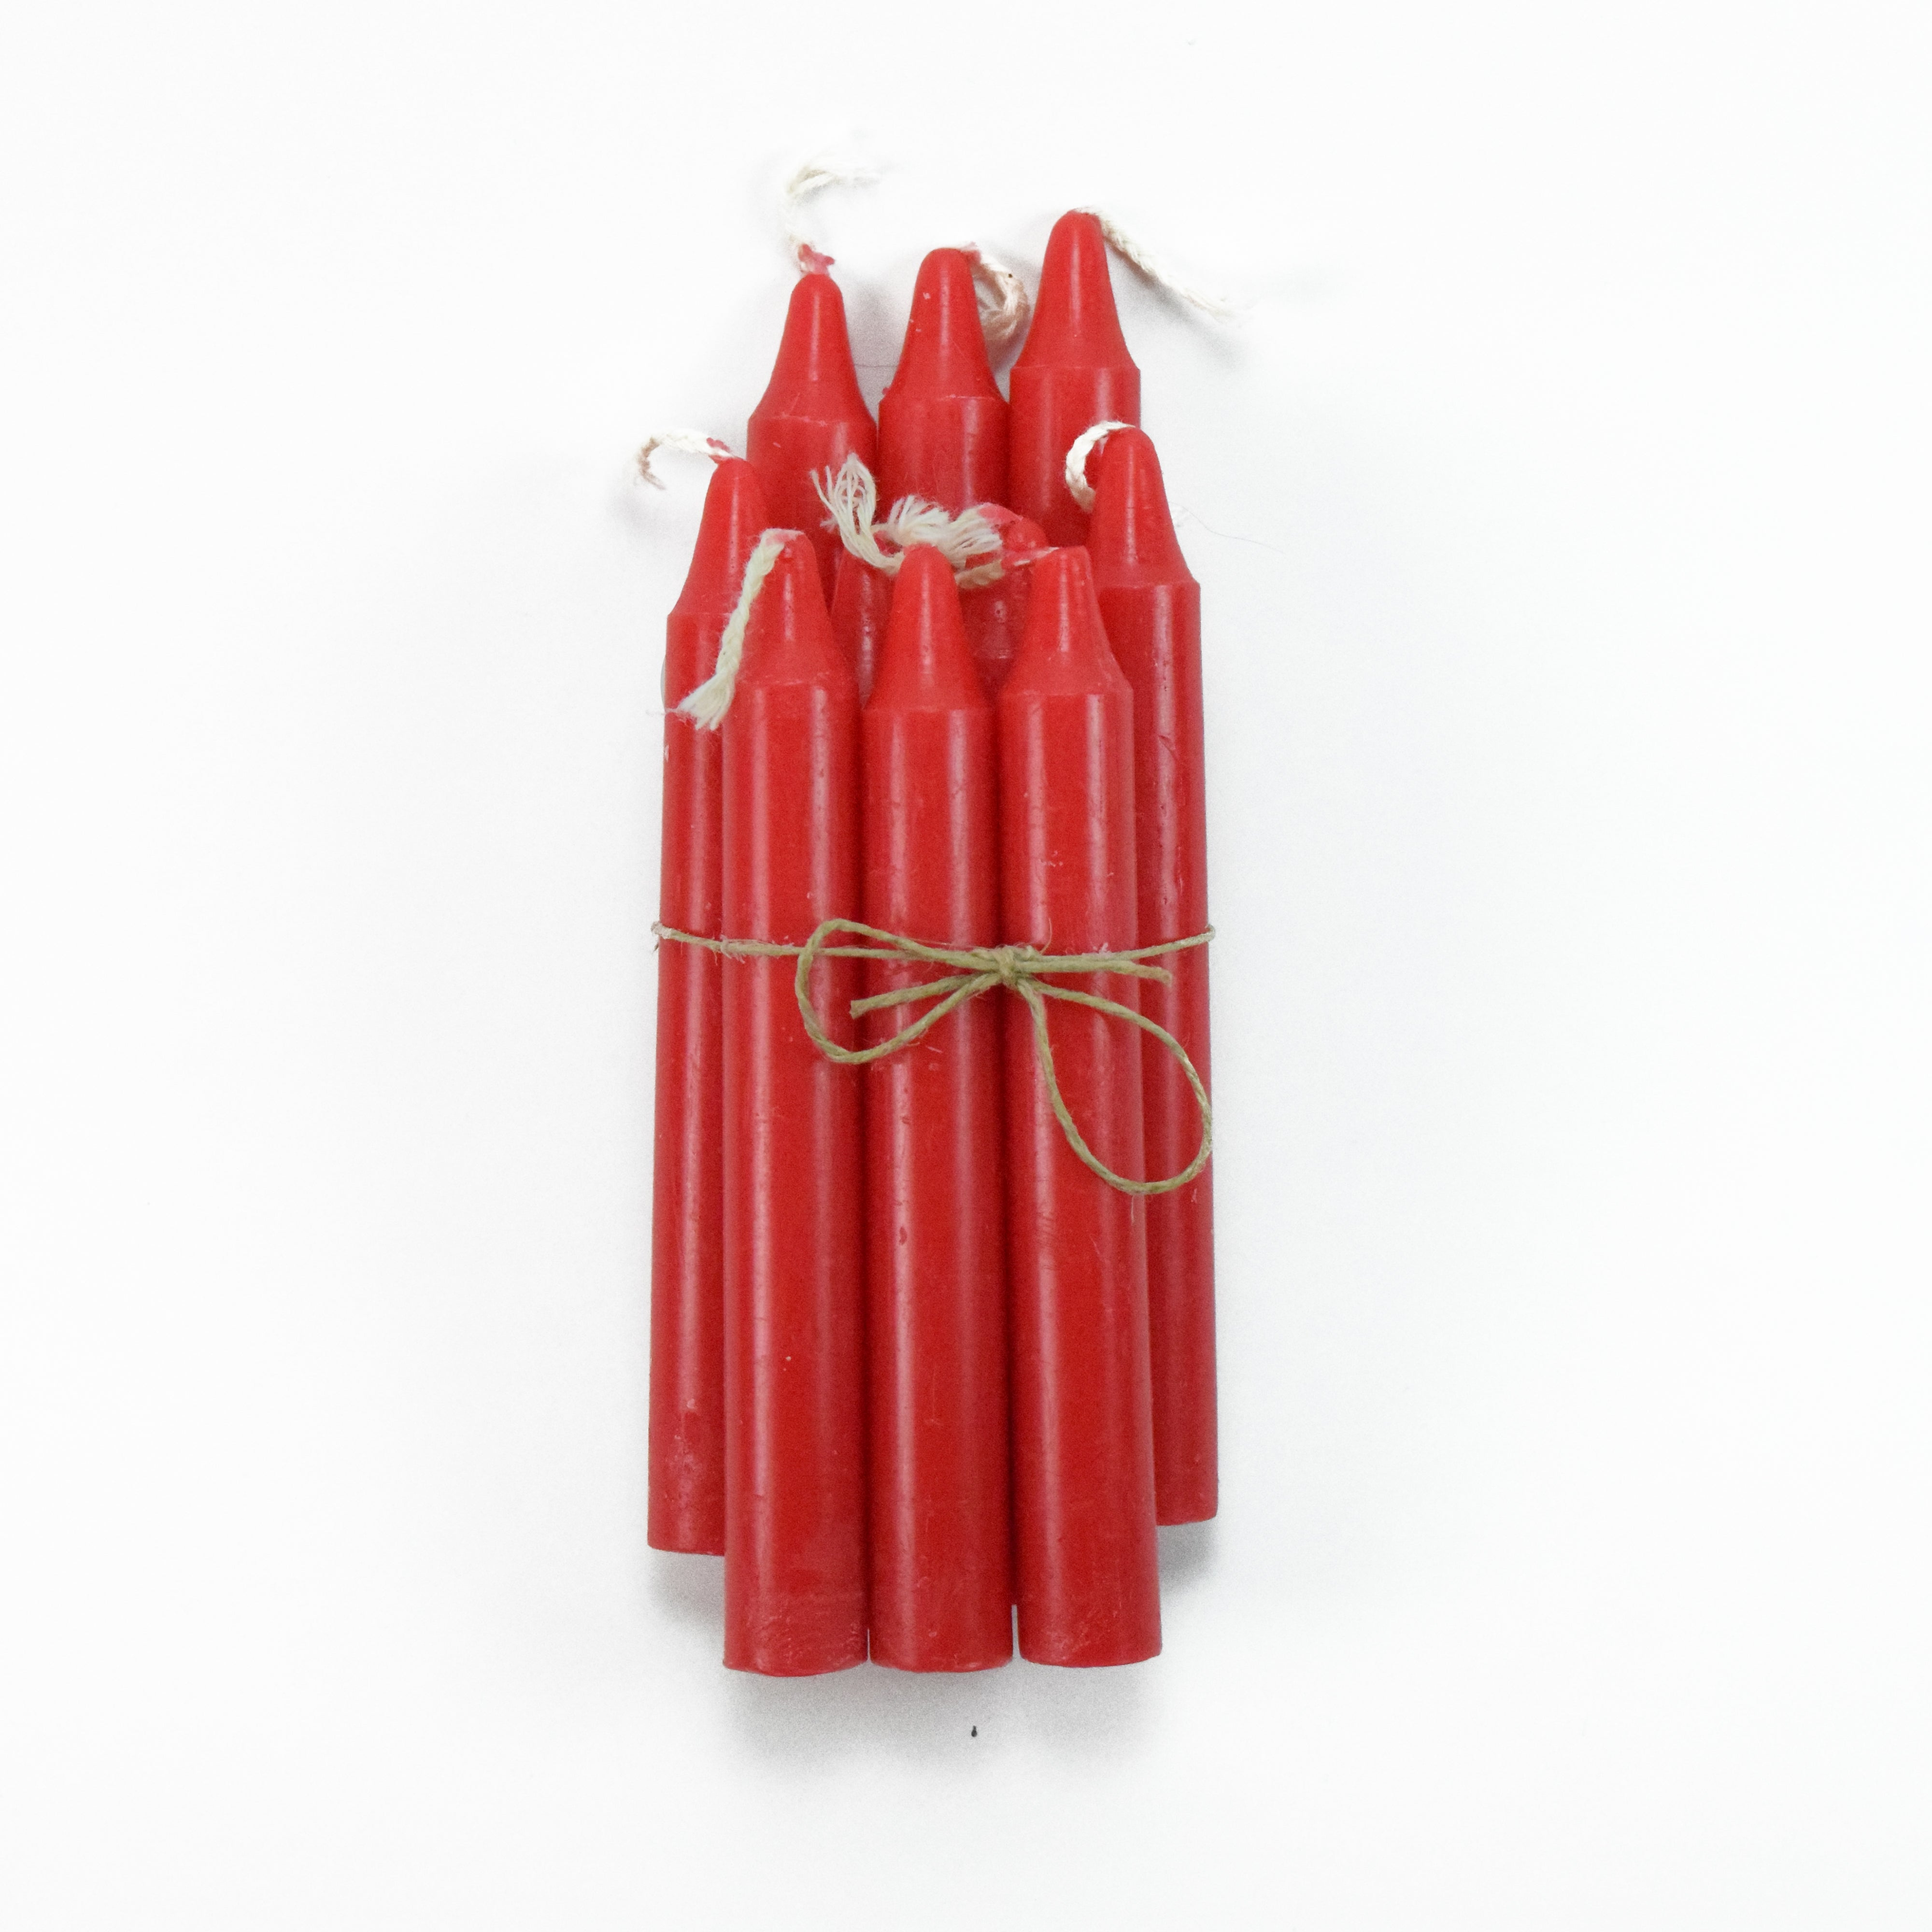 Red Spell Candles (10 Pack)